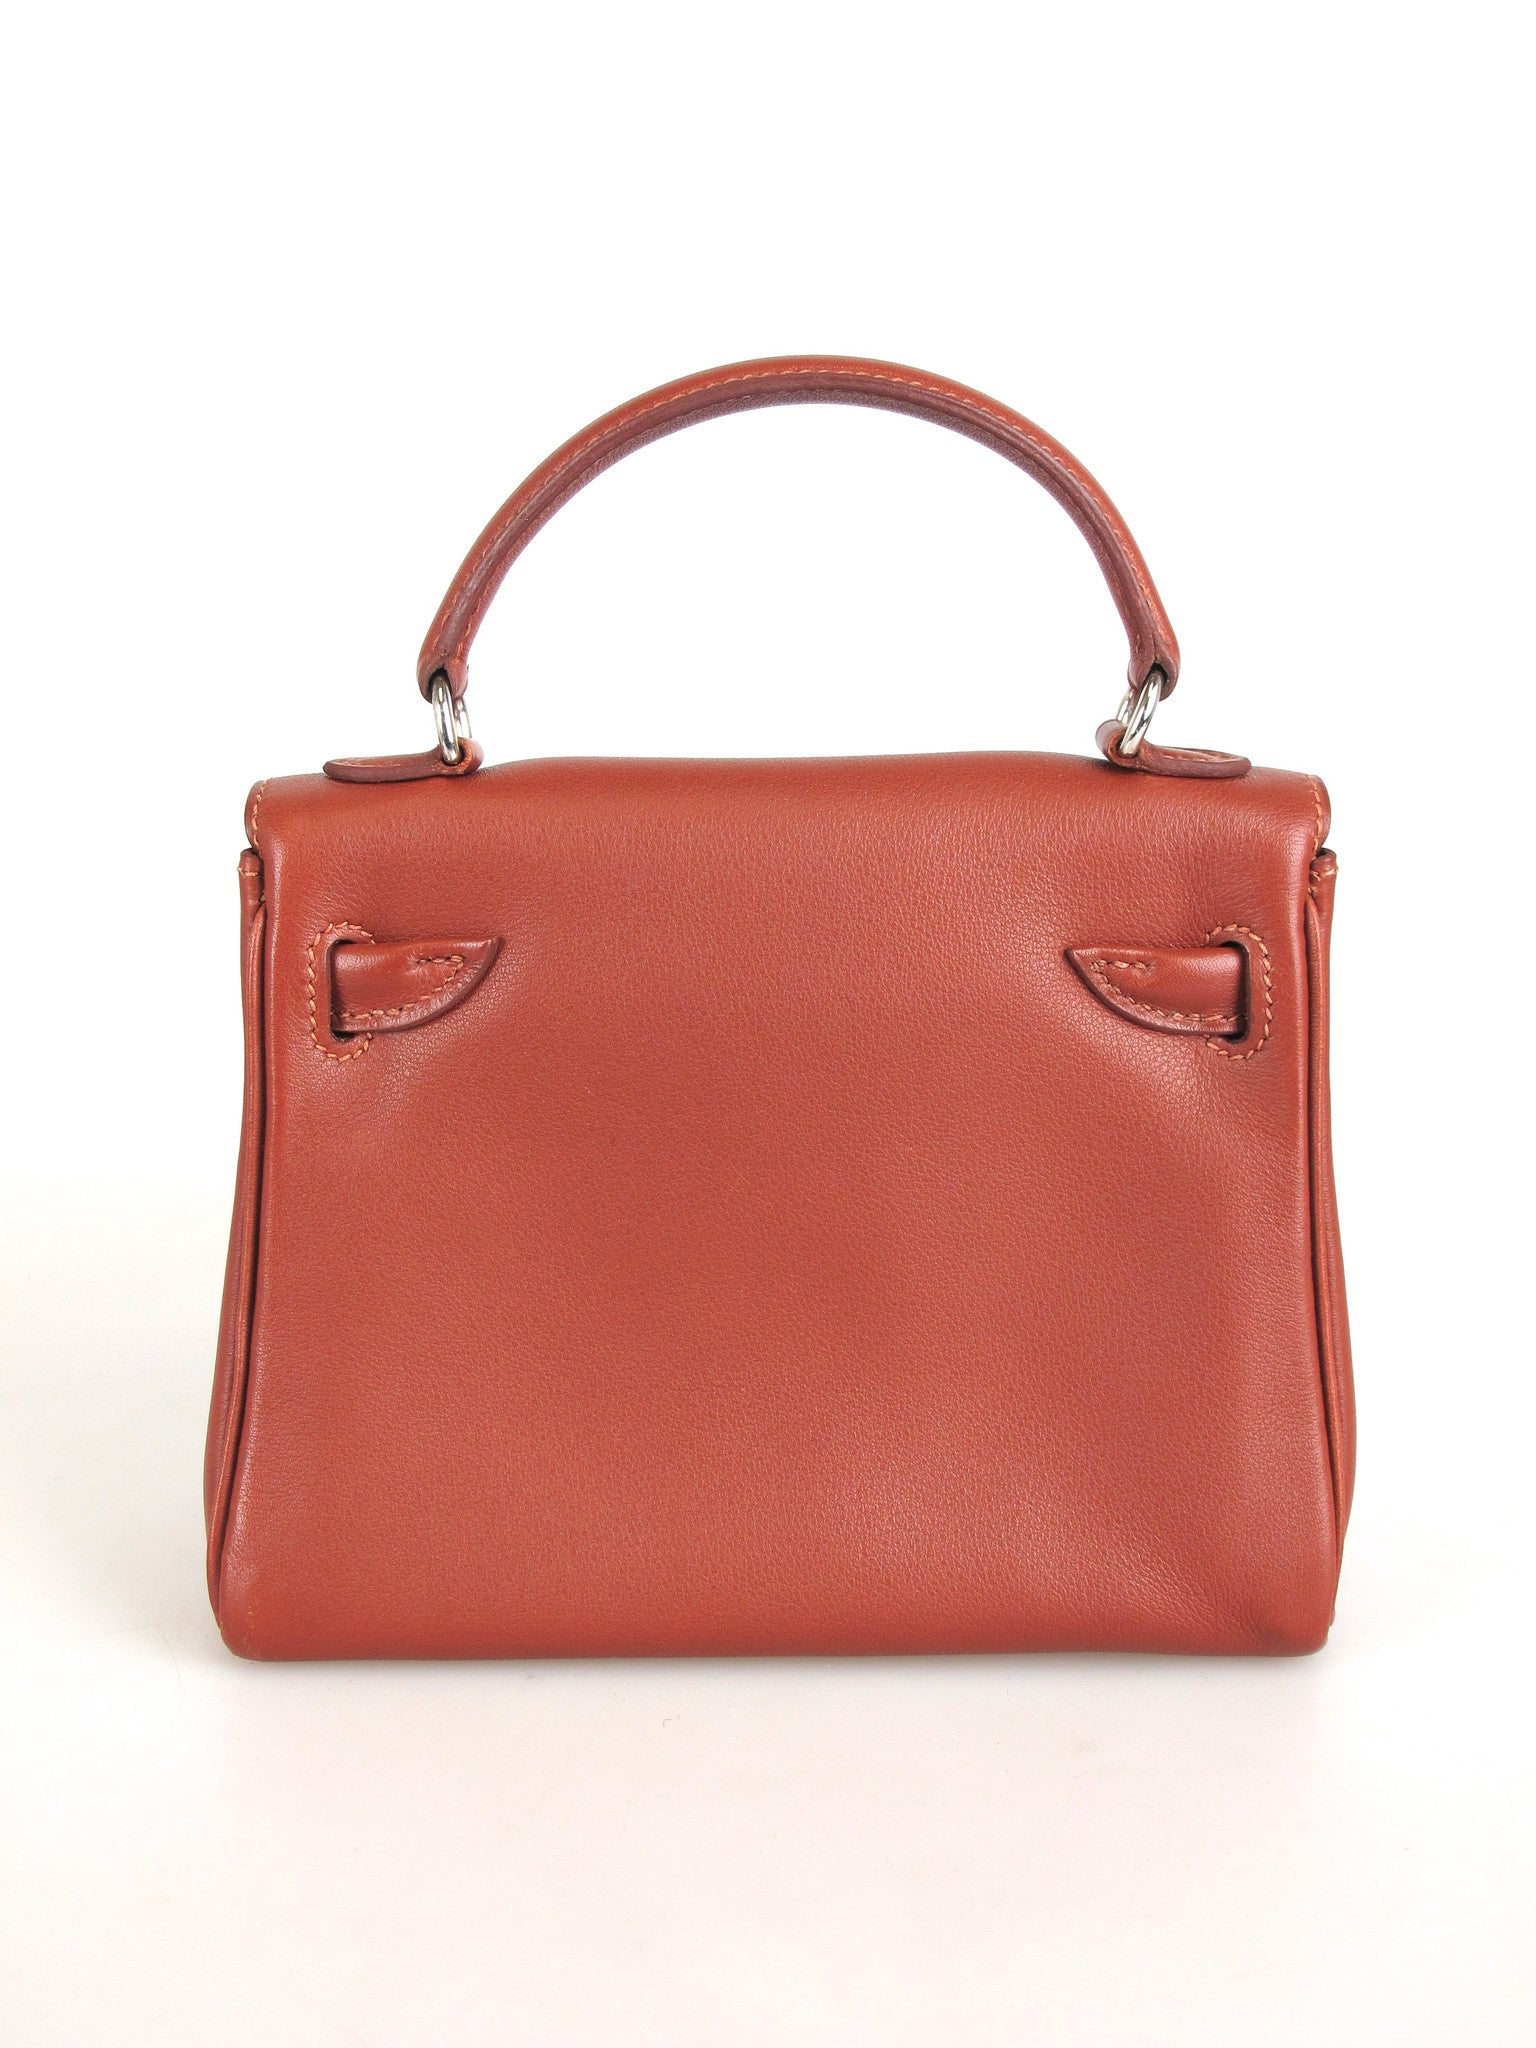 ... order hermes limited edition noisette gulliver leather quelle idole kelly  doll bag fd448 8407d ... 3c8b8cf81d